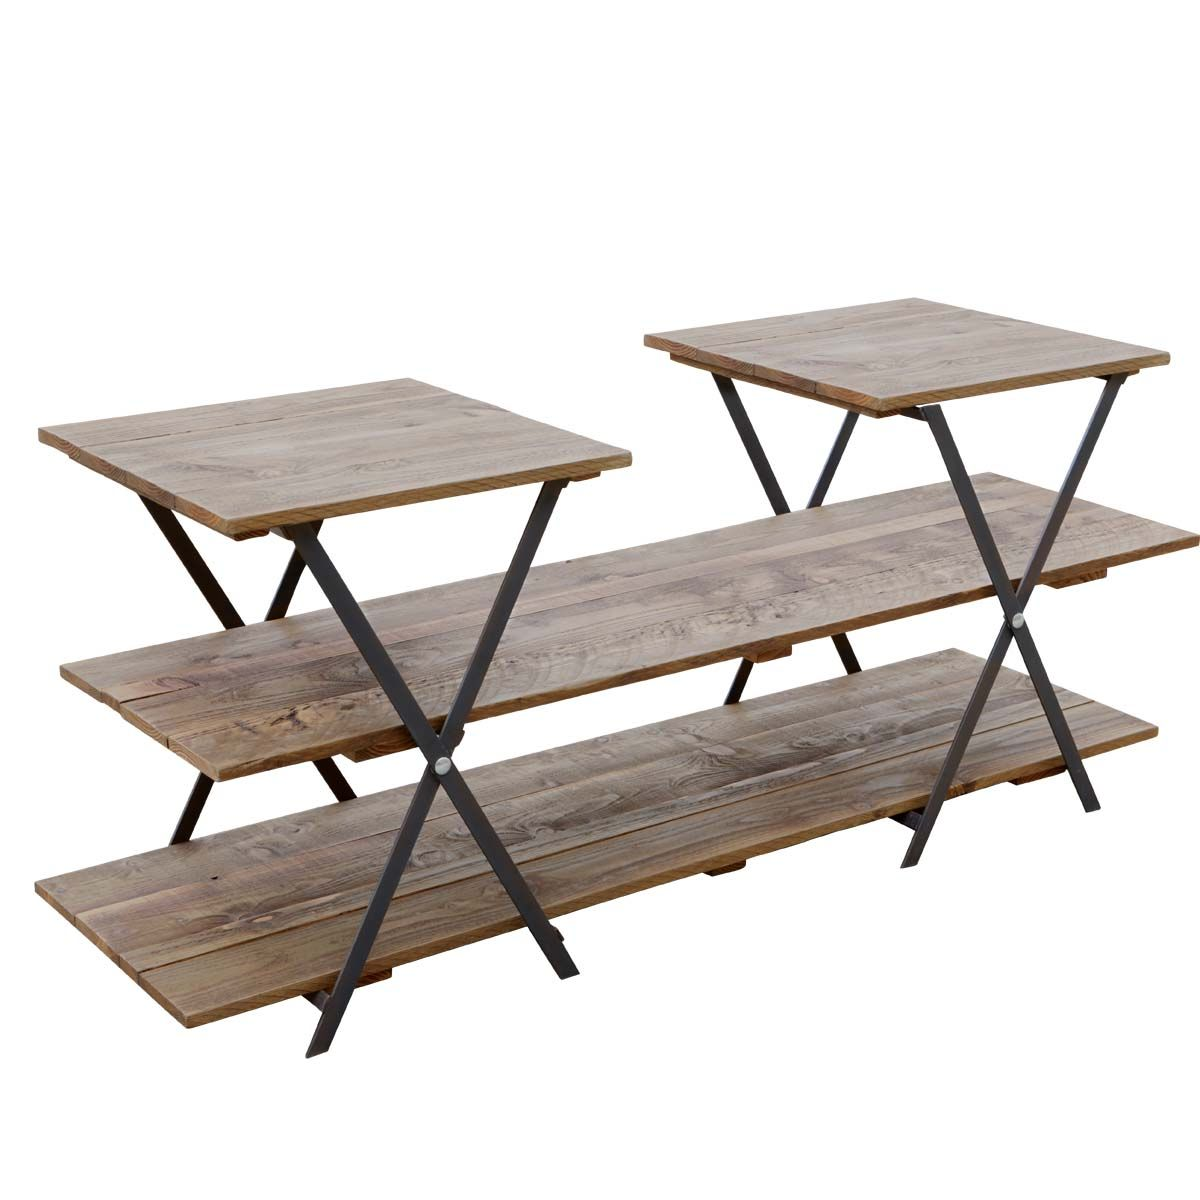 Great Furniture: Endearing Image Of Furniture For Living Room And Home Interior  Decoration With Rustic 3 Tier Solid Distressed Wood Table Top Shelving, ...